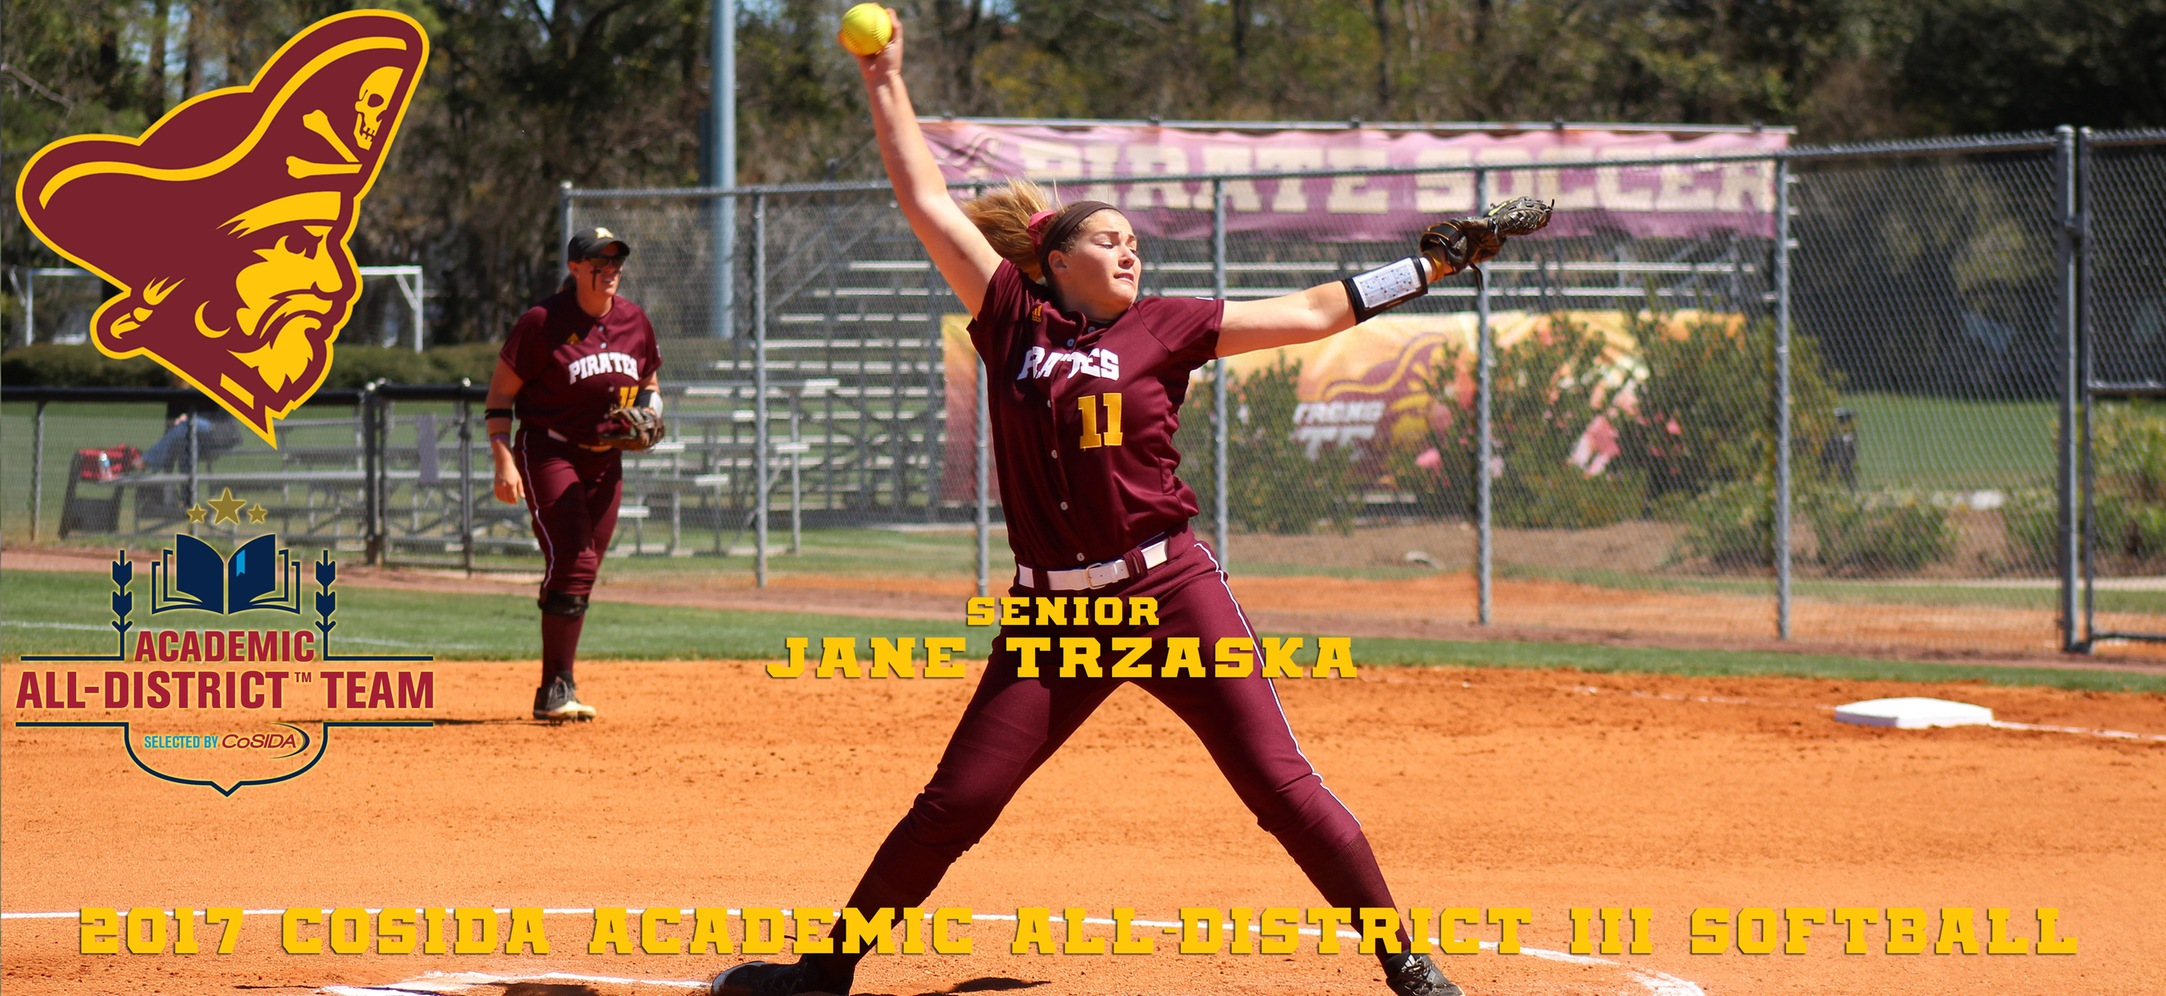 Jane Trzaska Earns CoSIDA Academic All-District III Softball Honors